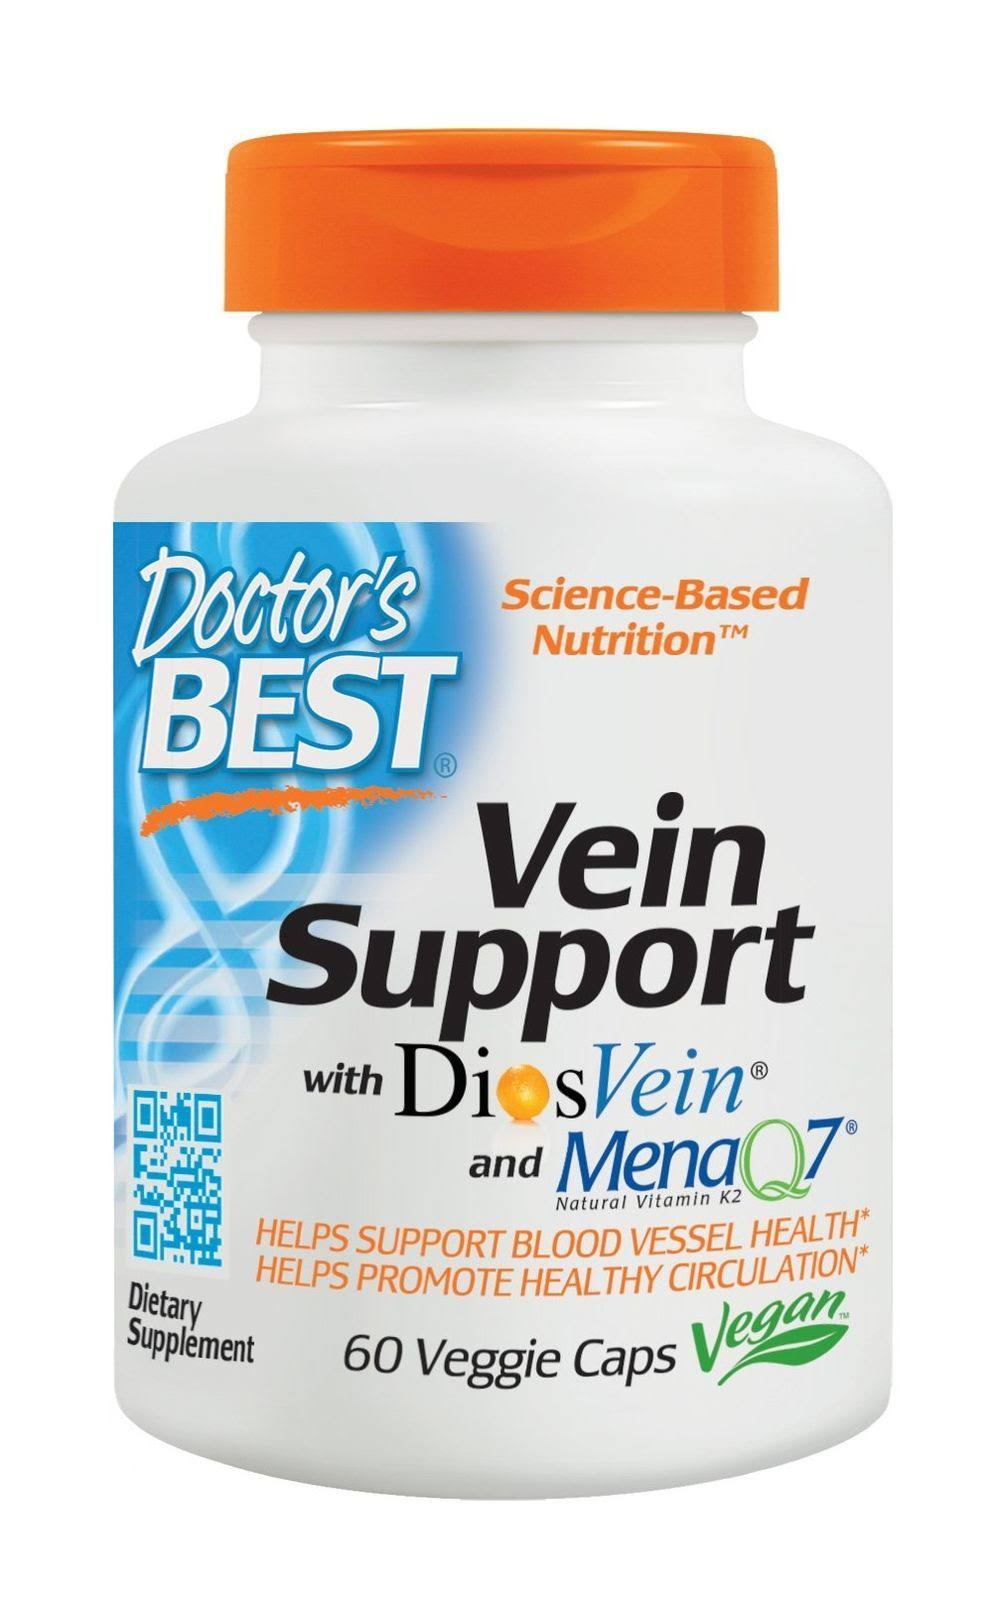 Doctor's Best Best Vein Support Supplement - 60 Veggie Caps